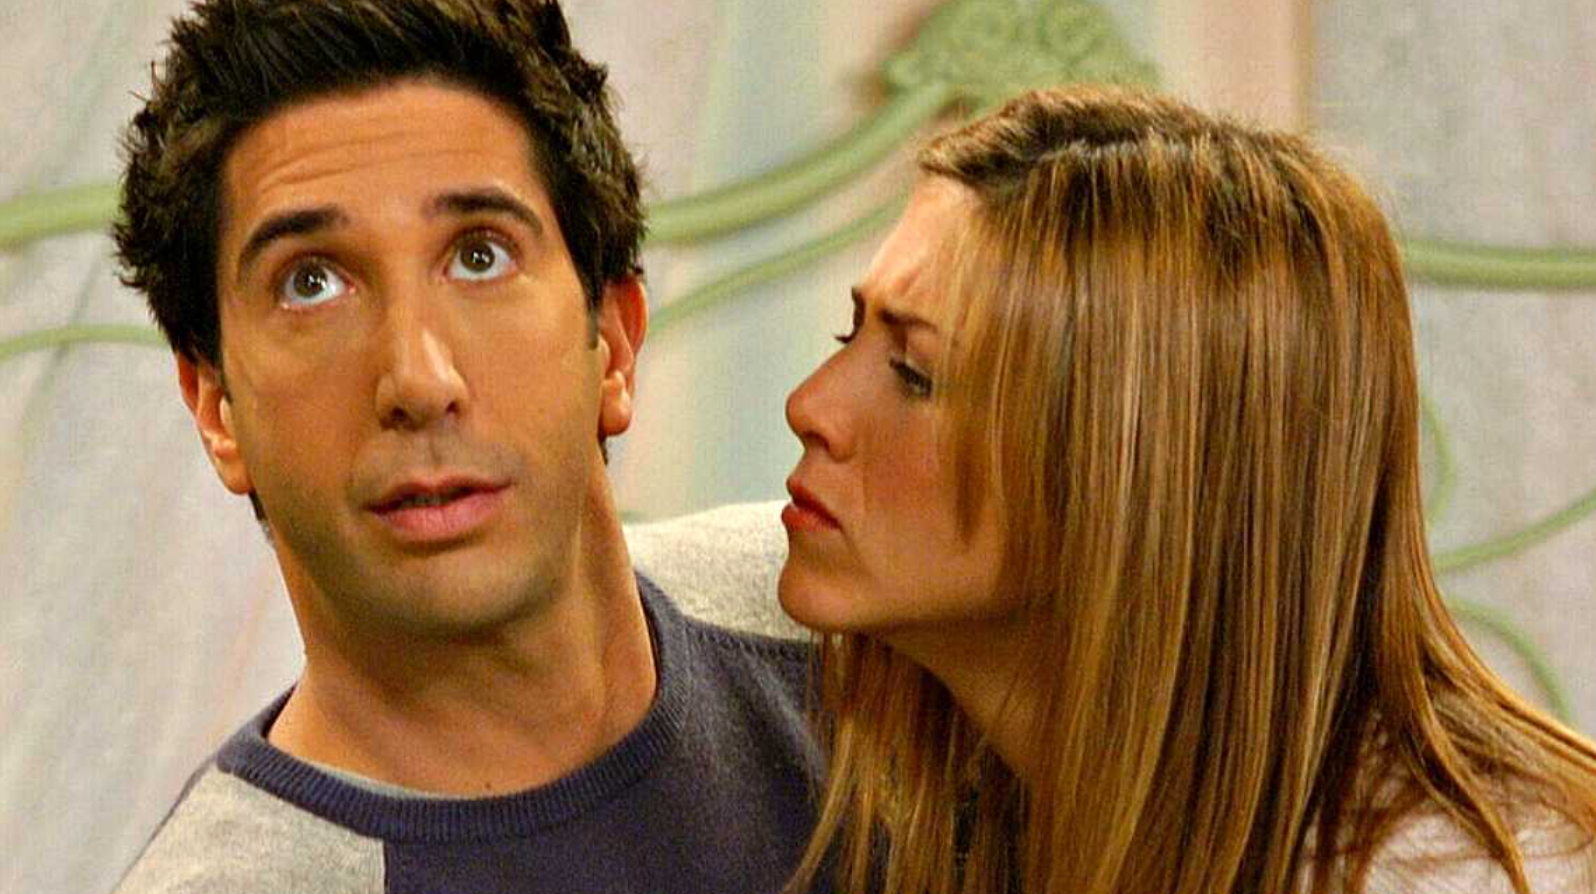 15 Brutally Honest Reasons Why You Were Friend-Zoned